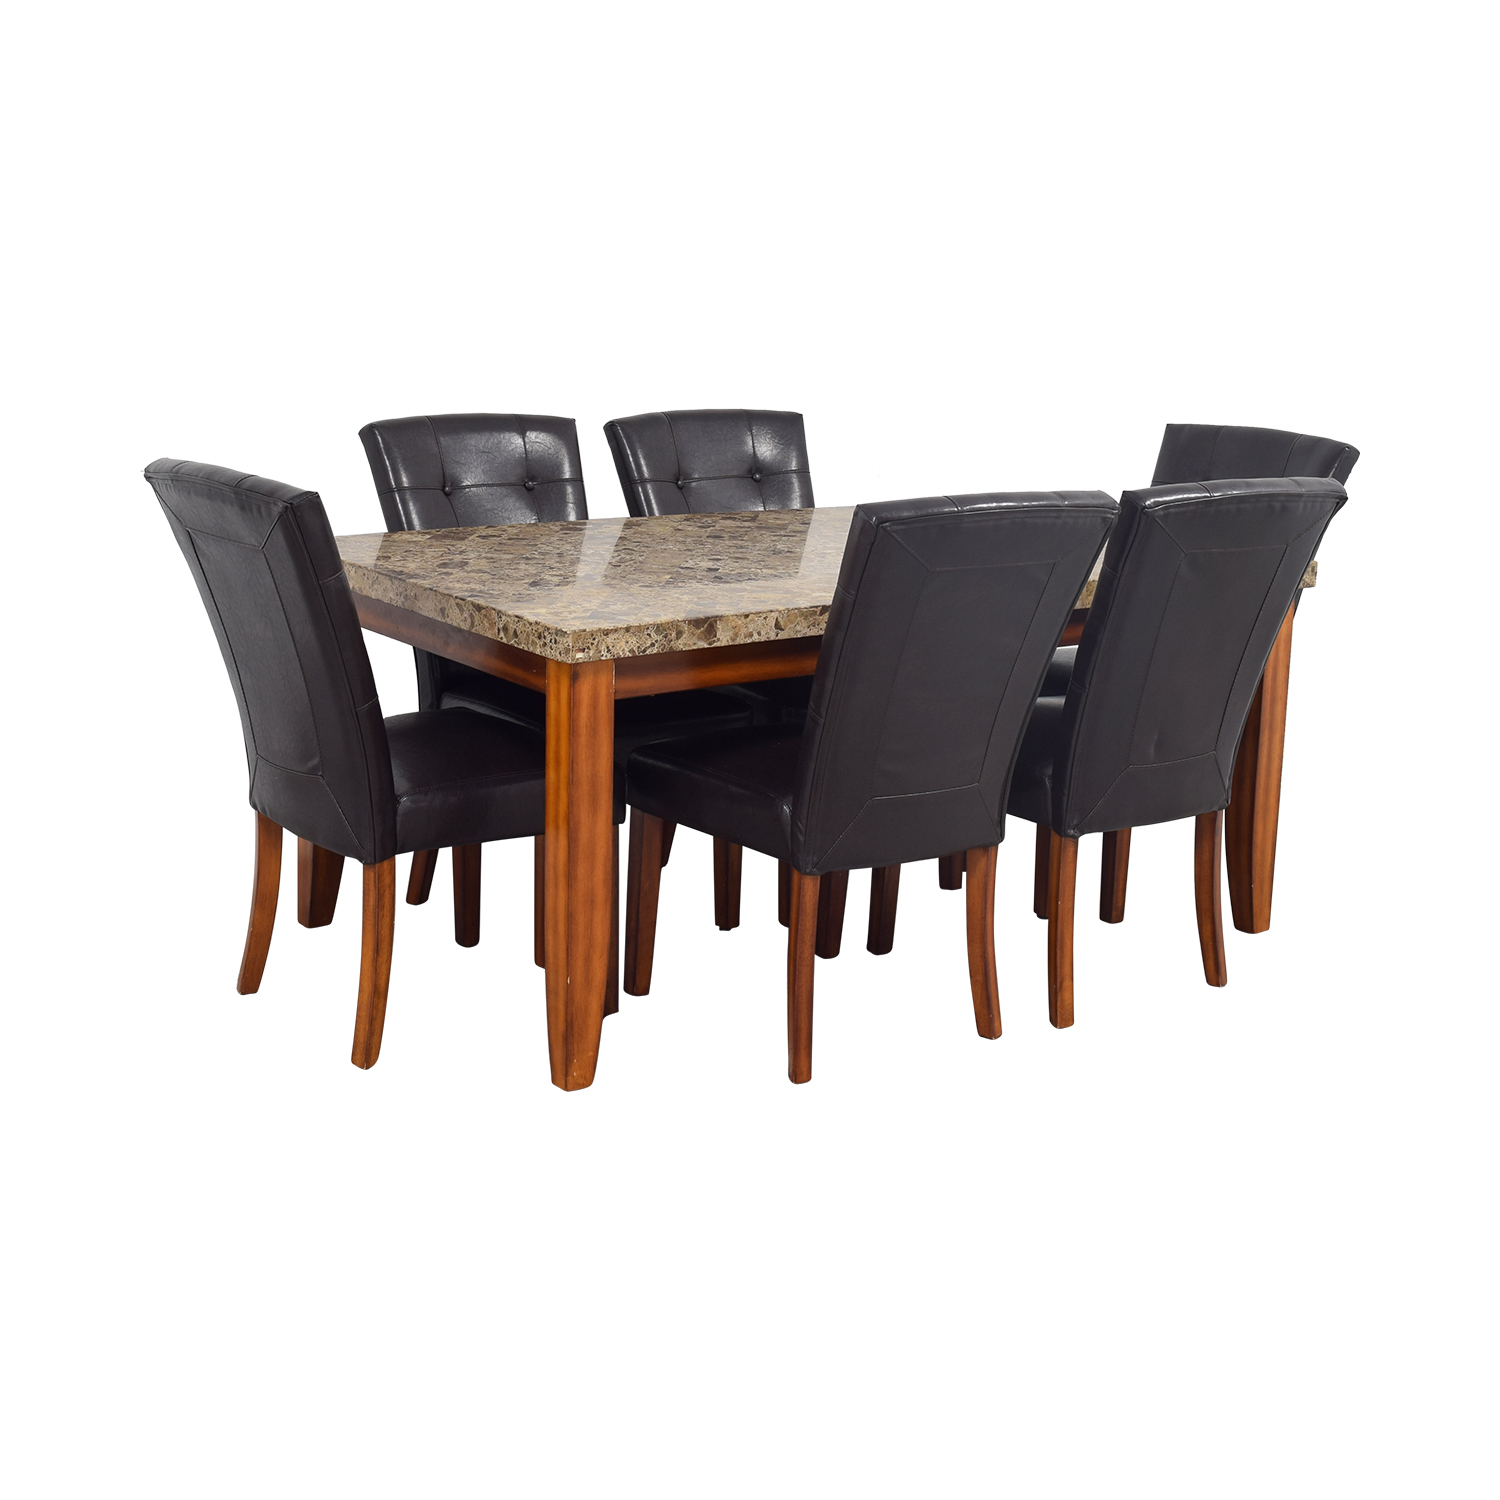 Bobs Dining Room Sets: Bob's Discount Furniture Bob's Furniture Faux